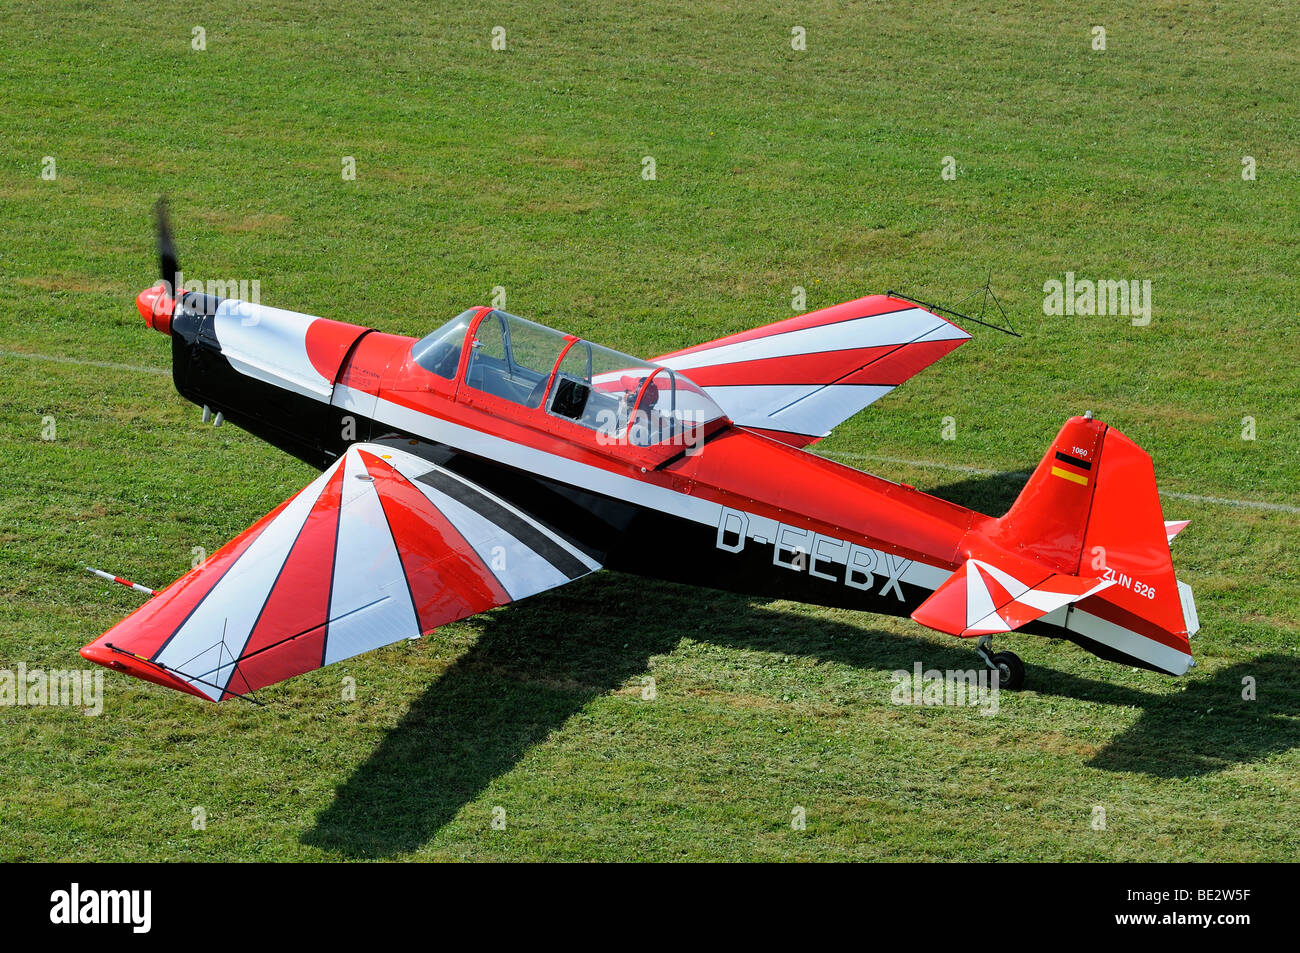 Czech sports and aerobatic aircraft Zlin Z-526, Europe's largest meeting of vintage planes at Hahnweide, Kirchheim - Stock Image